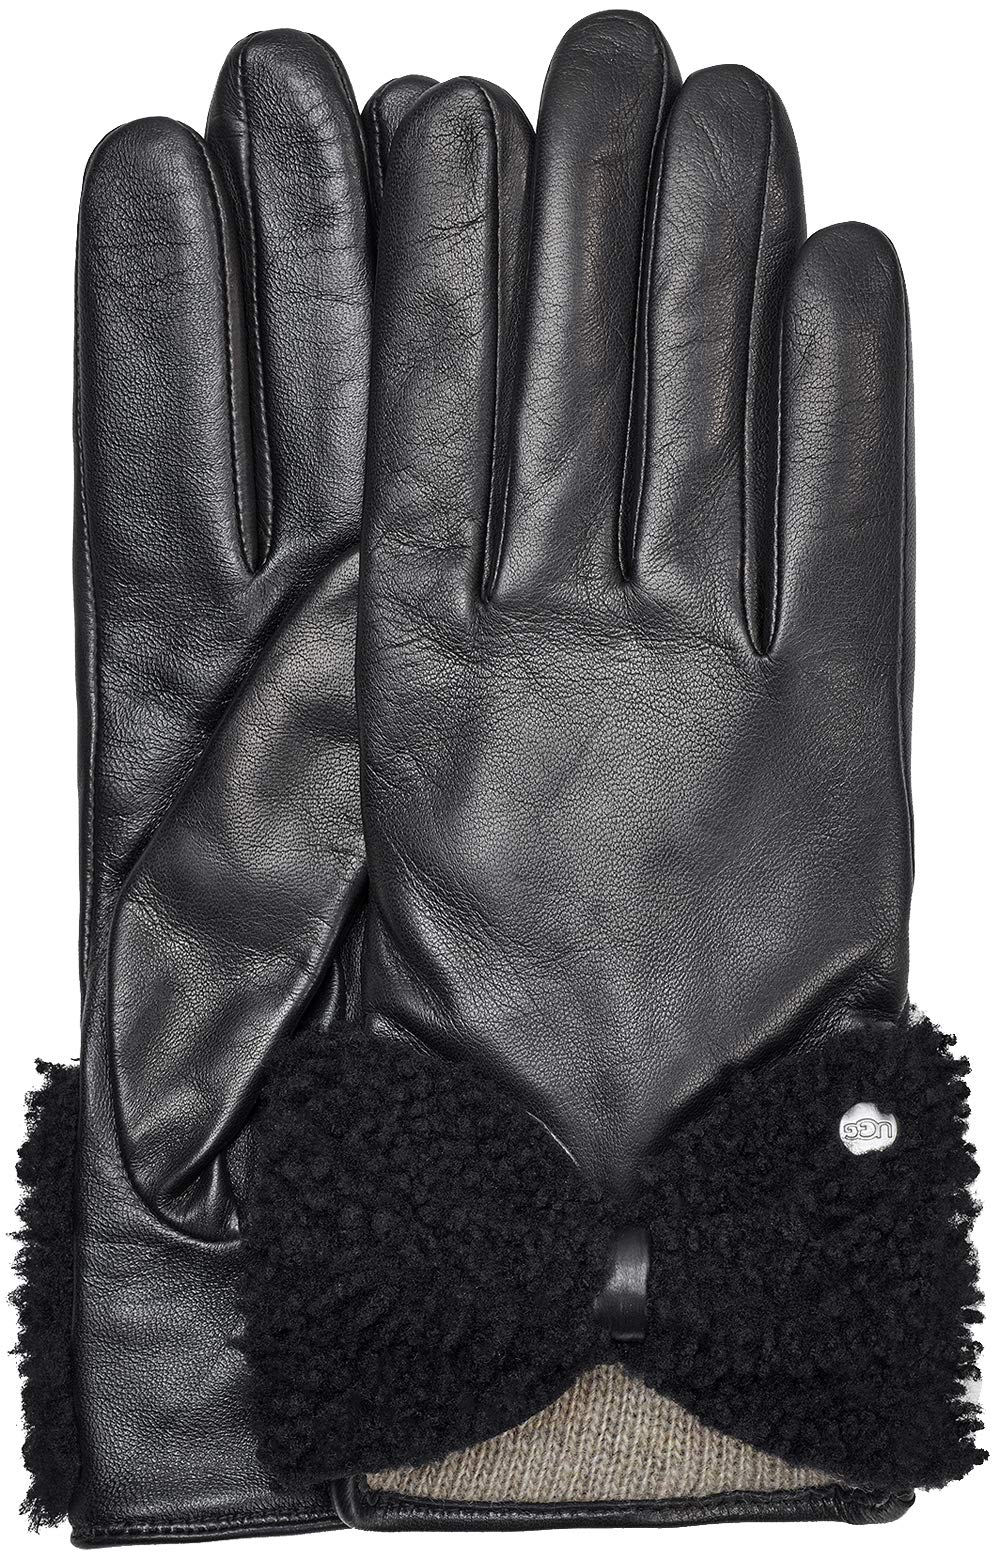 UGG Women's Tech Leather Gloves with Sheepskin Bow Black LG